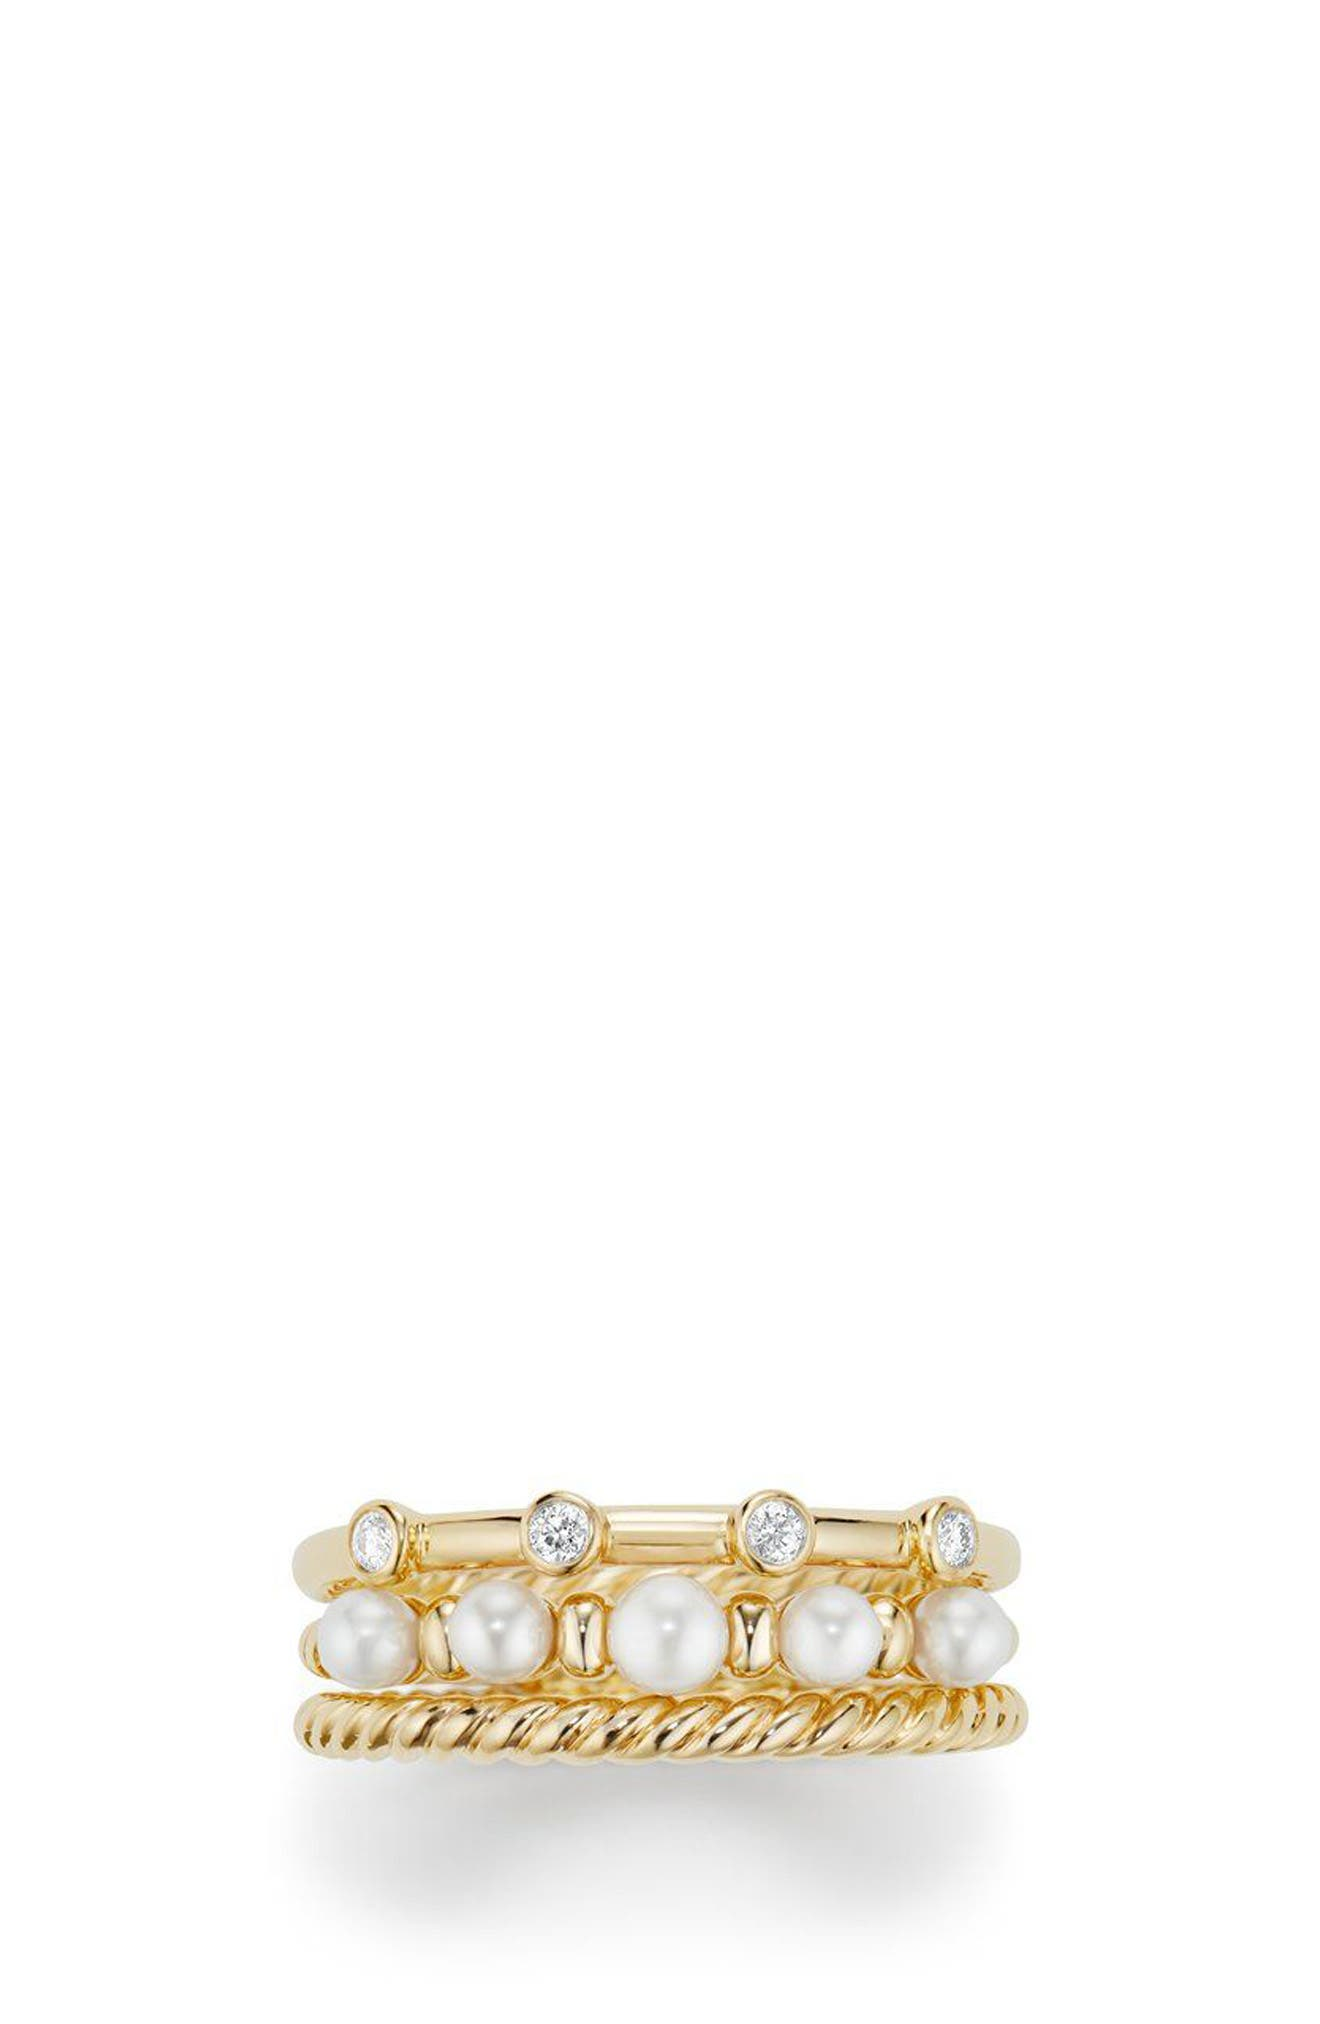 Petite Perle Narrow Multi Row Ring with Pearls and Diamonds,                             Main thumbnail 1, color,                             GOLD/ DIAMOND/ PEARL